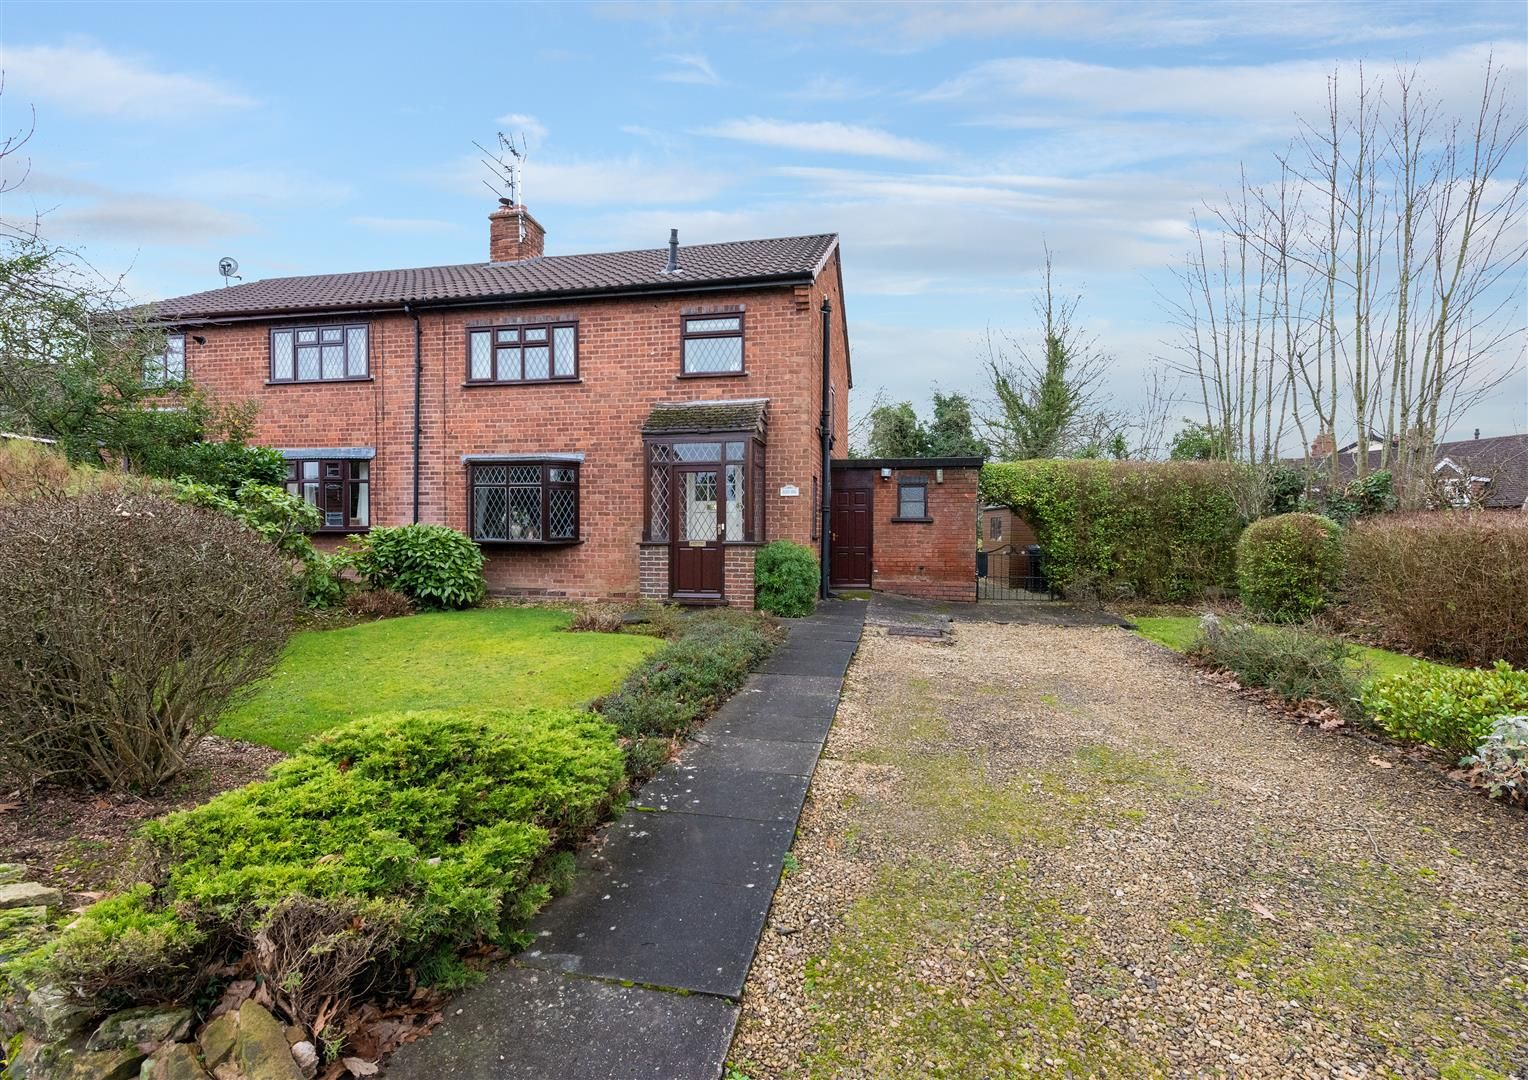 3 bed house for sale in Belbroughton 1